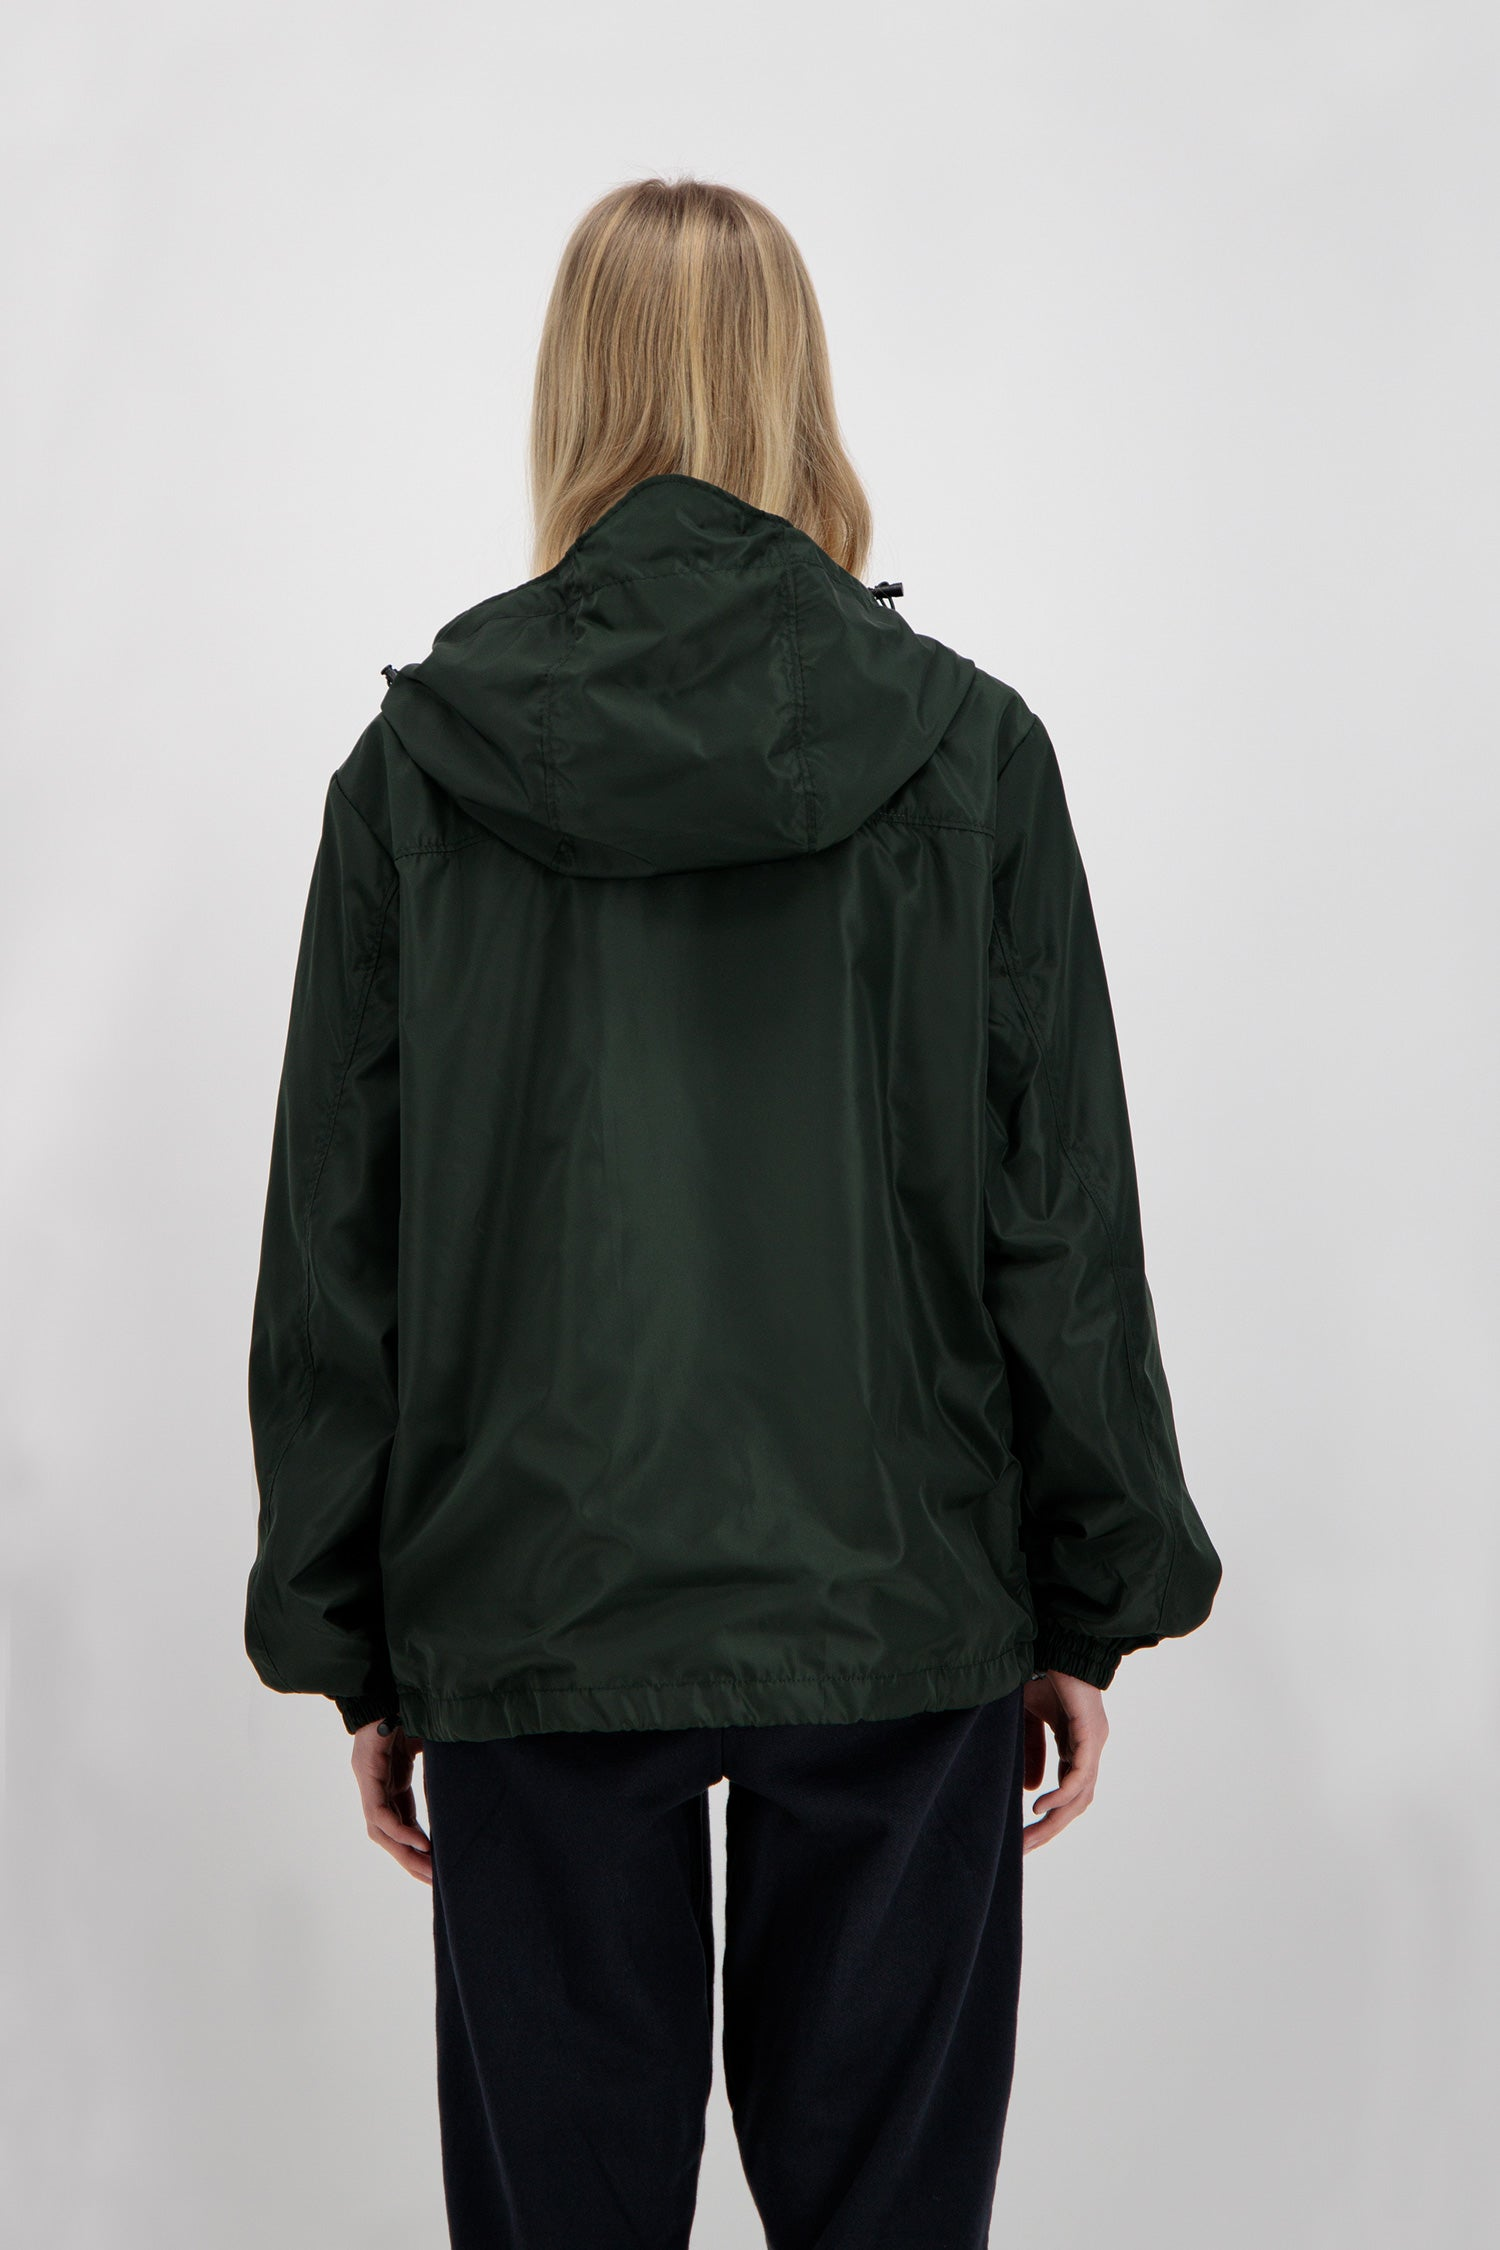 ØLÅF Zip Jacket <br>Kale Green